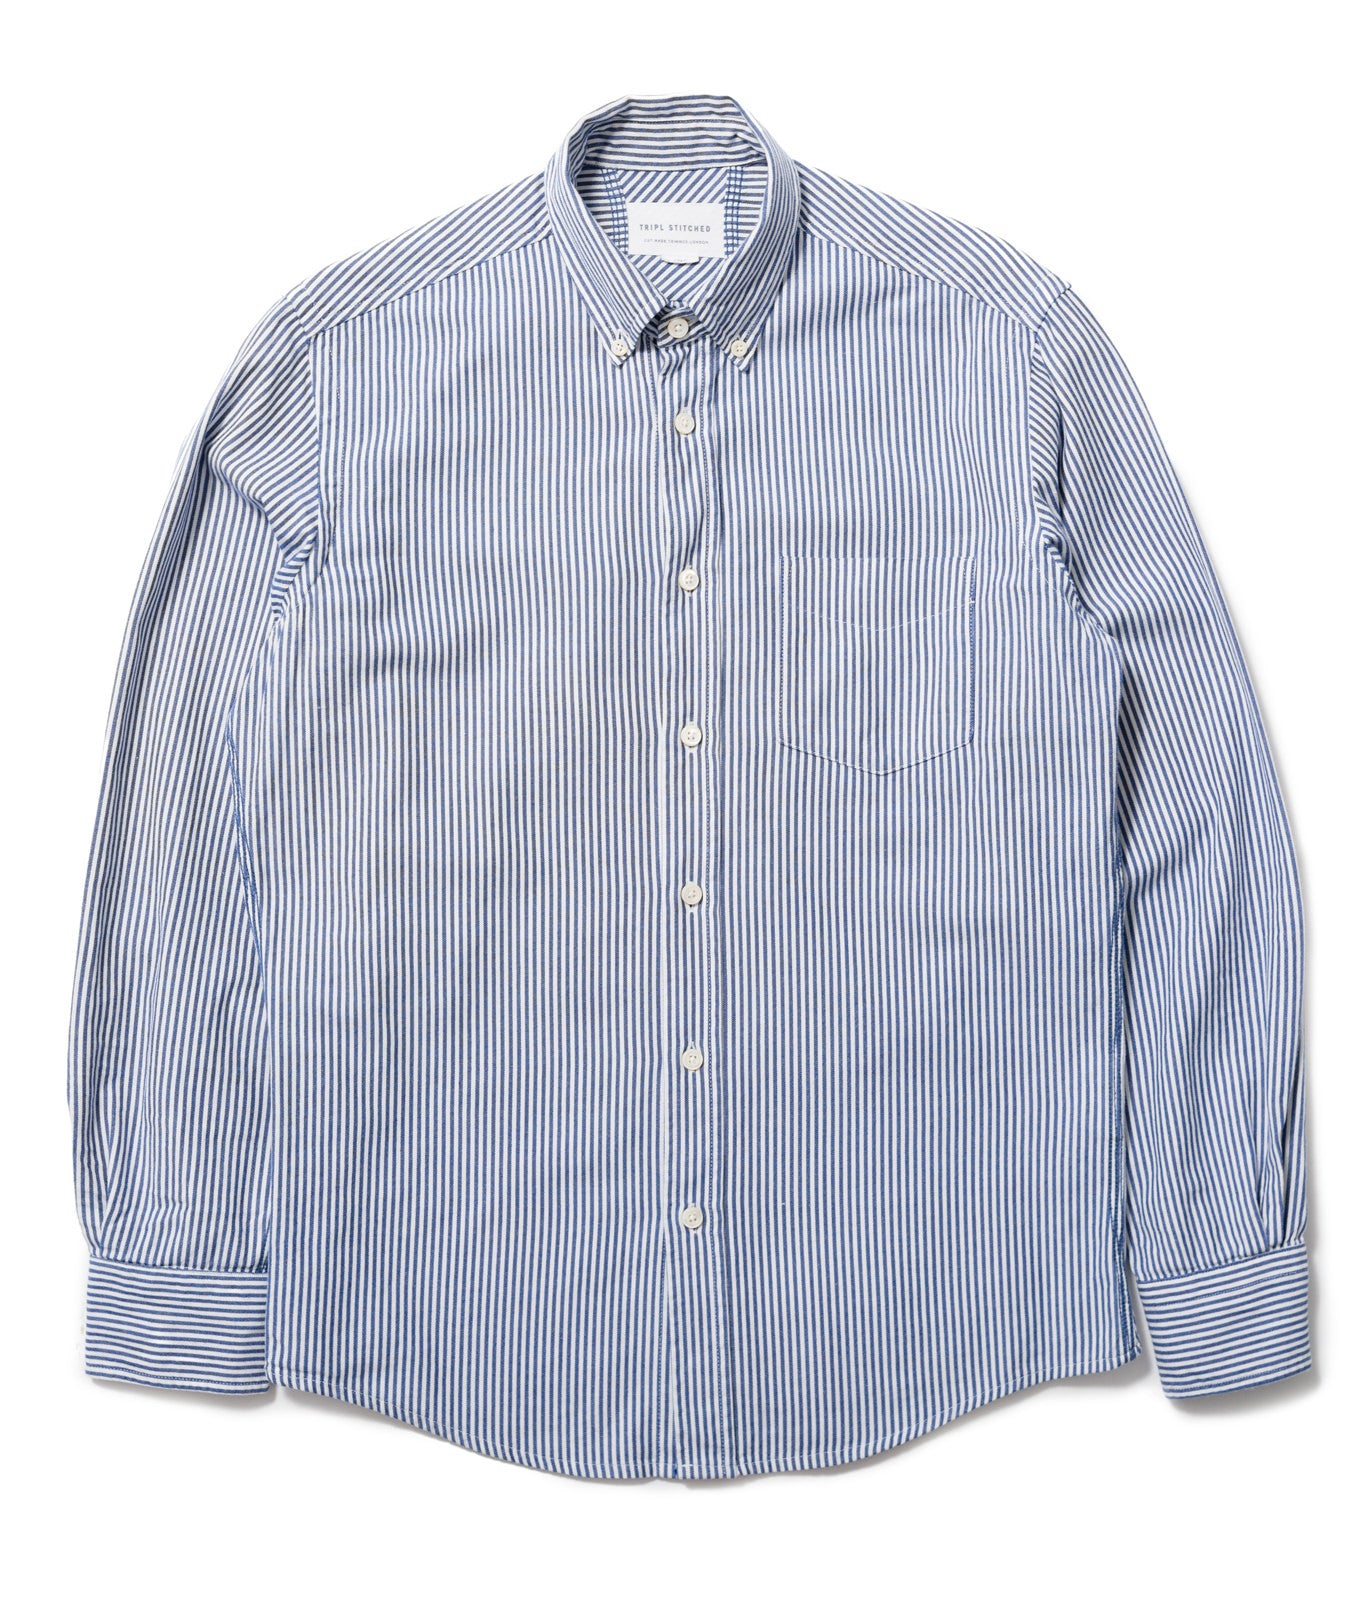 Classic Button Down - Navy Candy Stripe